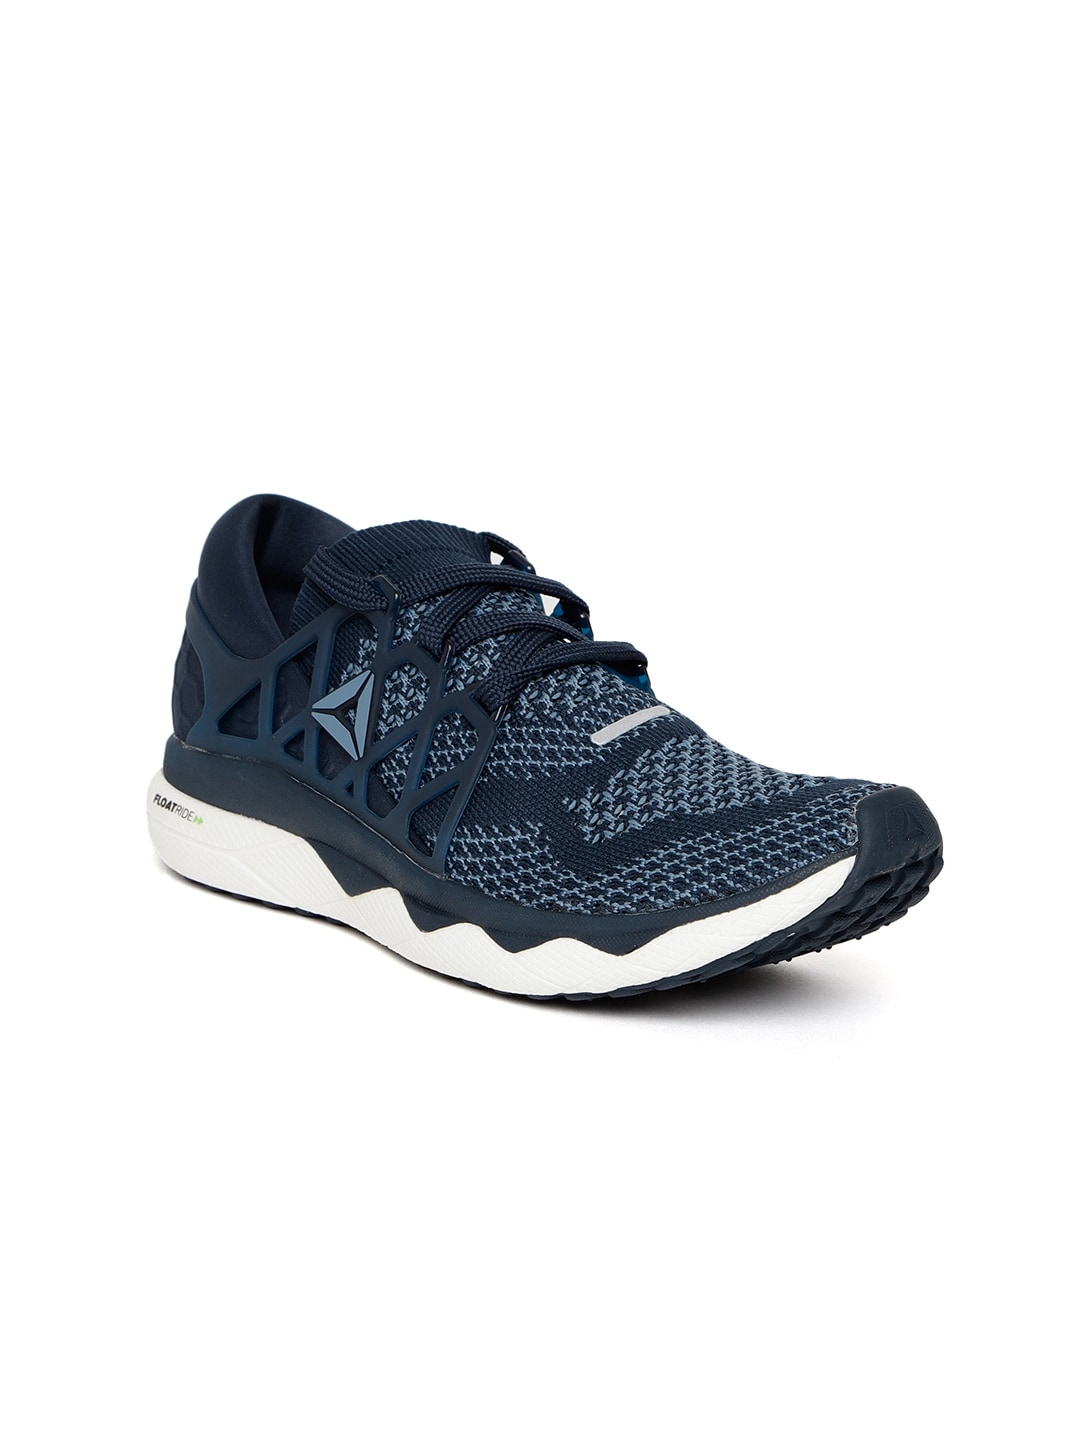 7dce646568ee Reebok Sports Shoes - Buy Reebok Sports Shoes in India